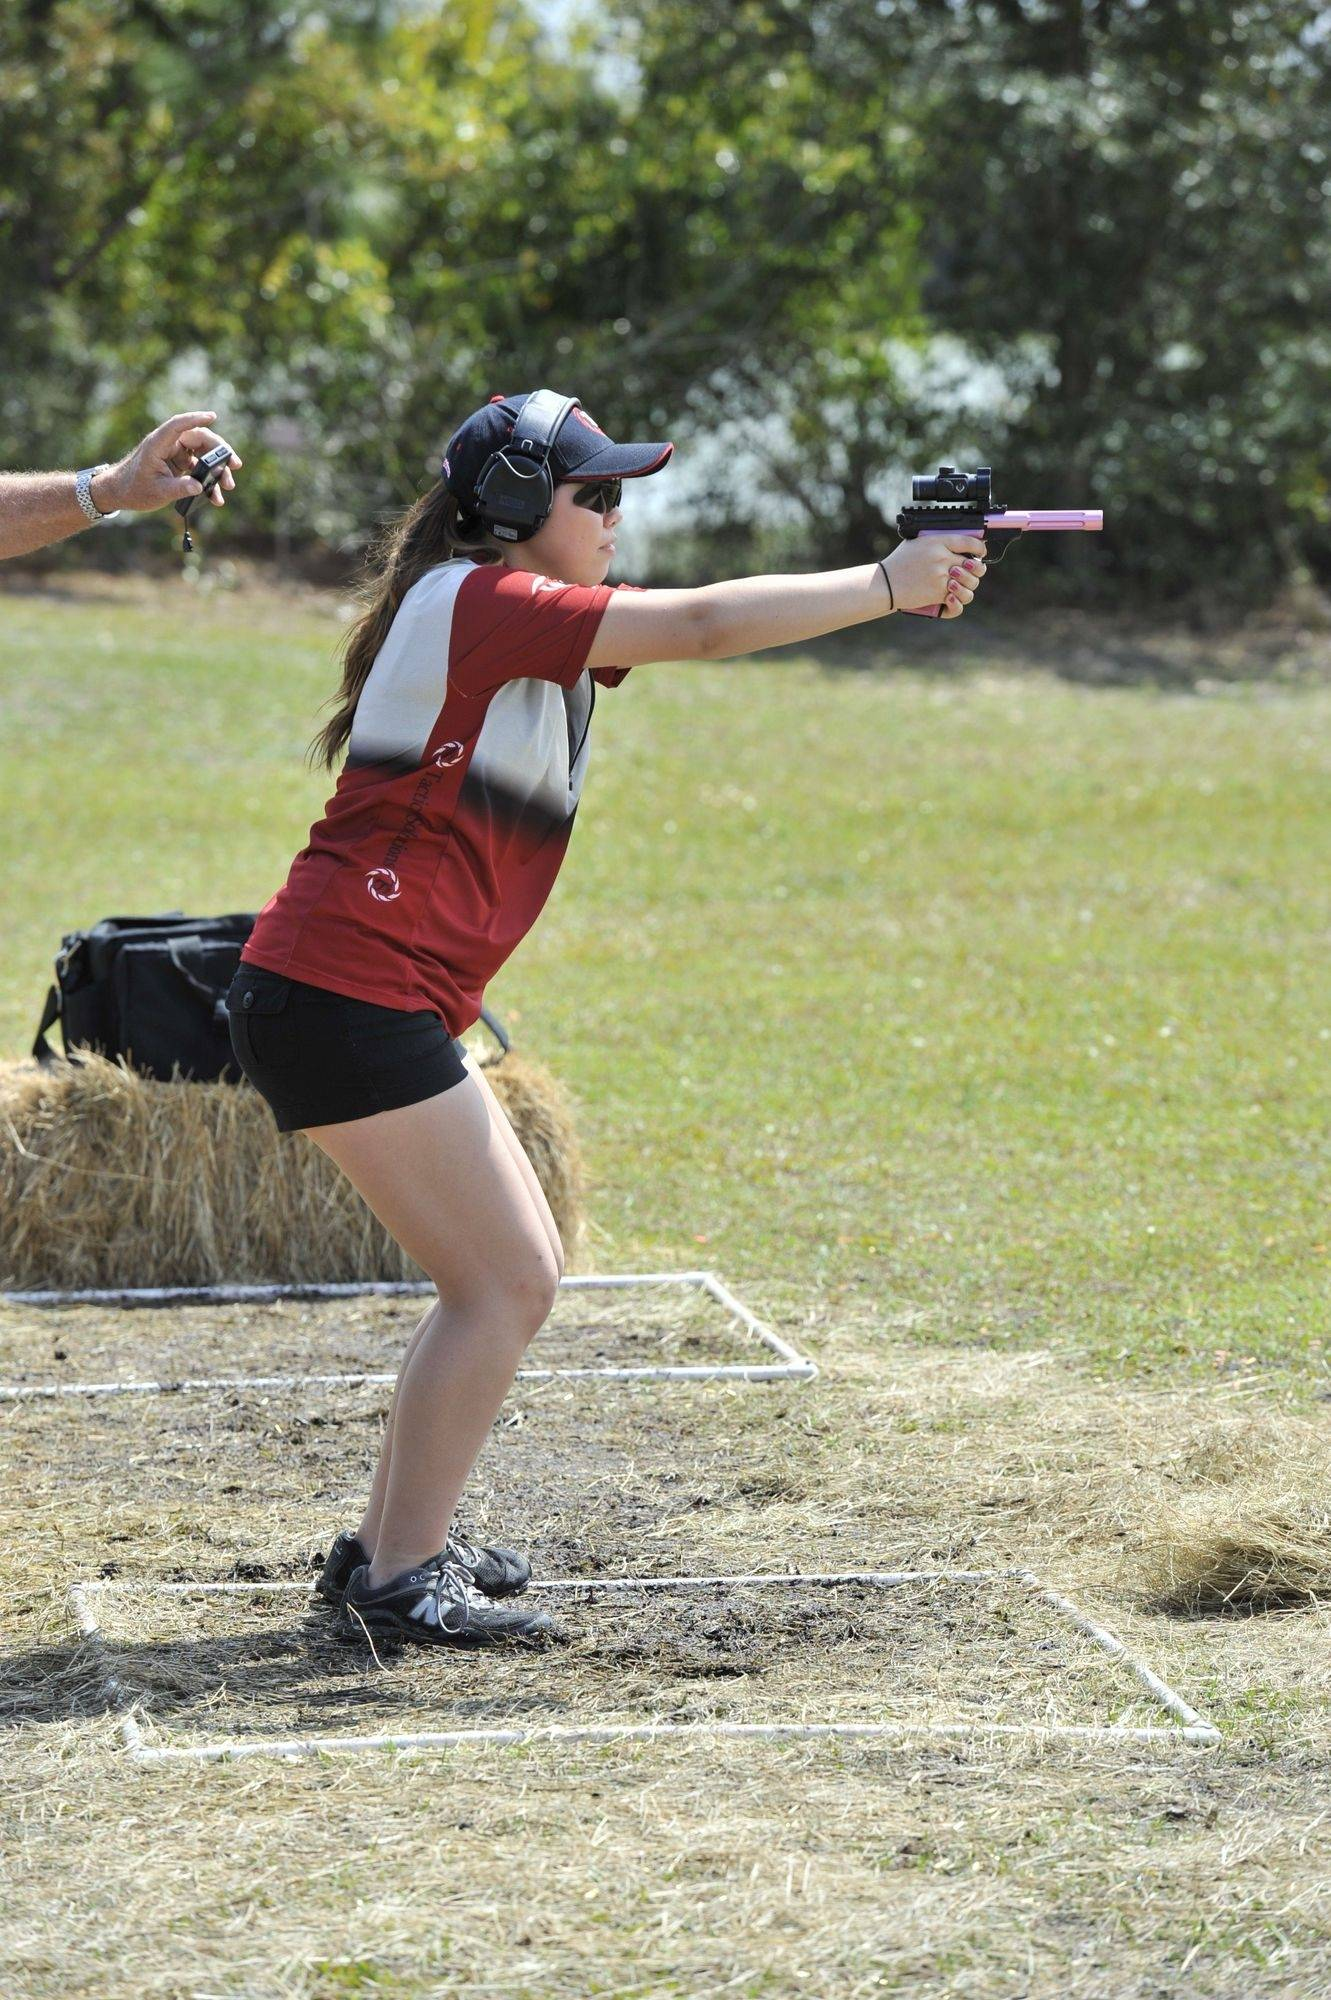 Ashley Bolda, 15, of Crystal Lake, recently placed 164th over all in the Steel Challenge World Speed Shooting Championships out of 211 shooters from around the world.